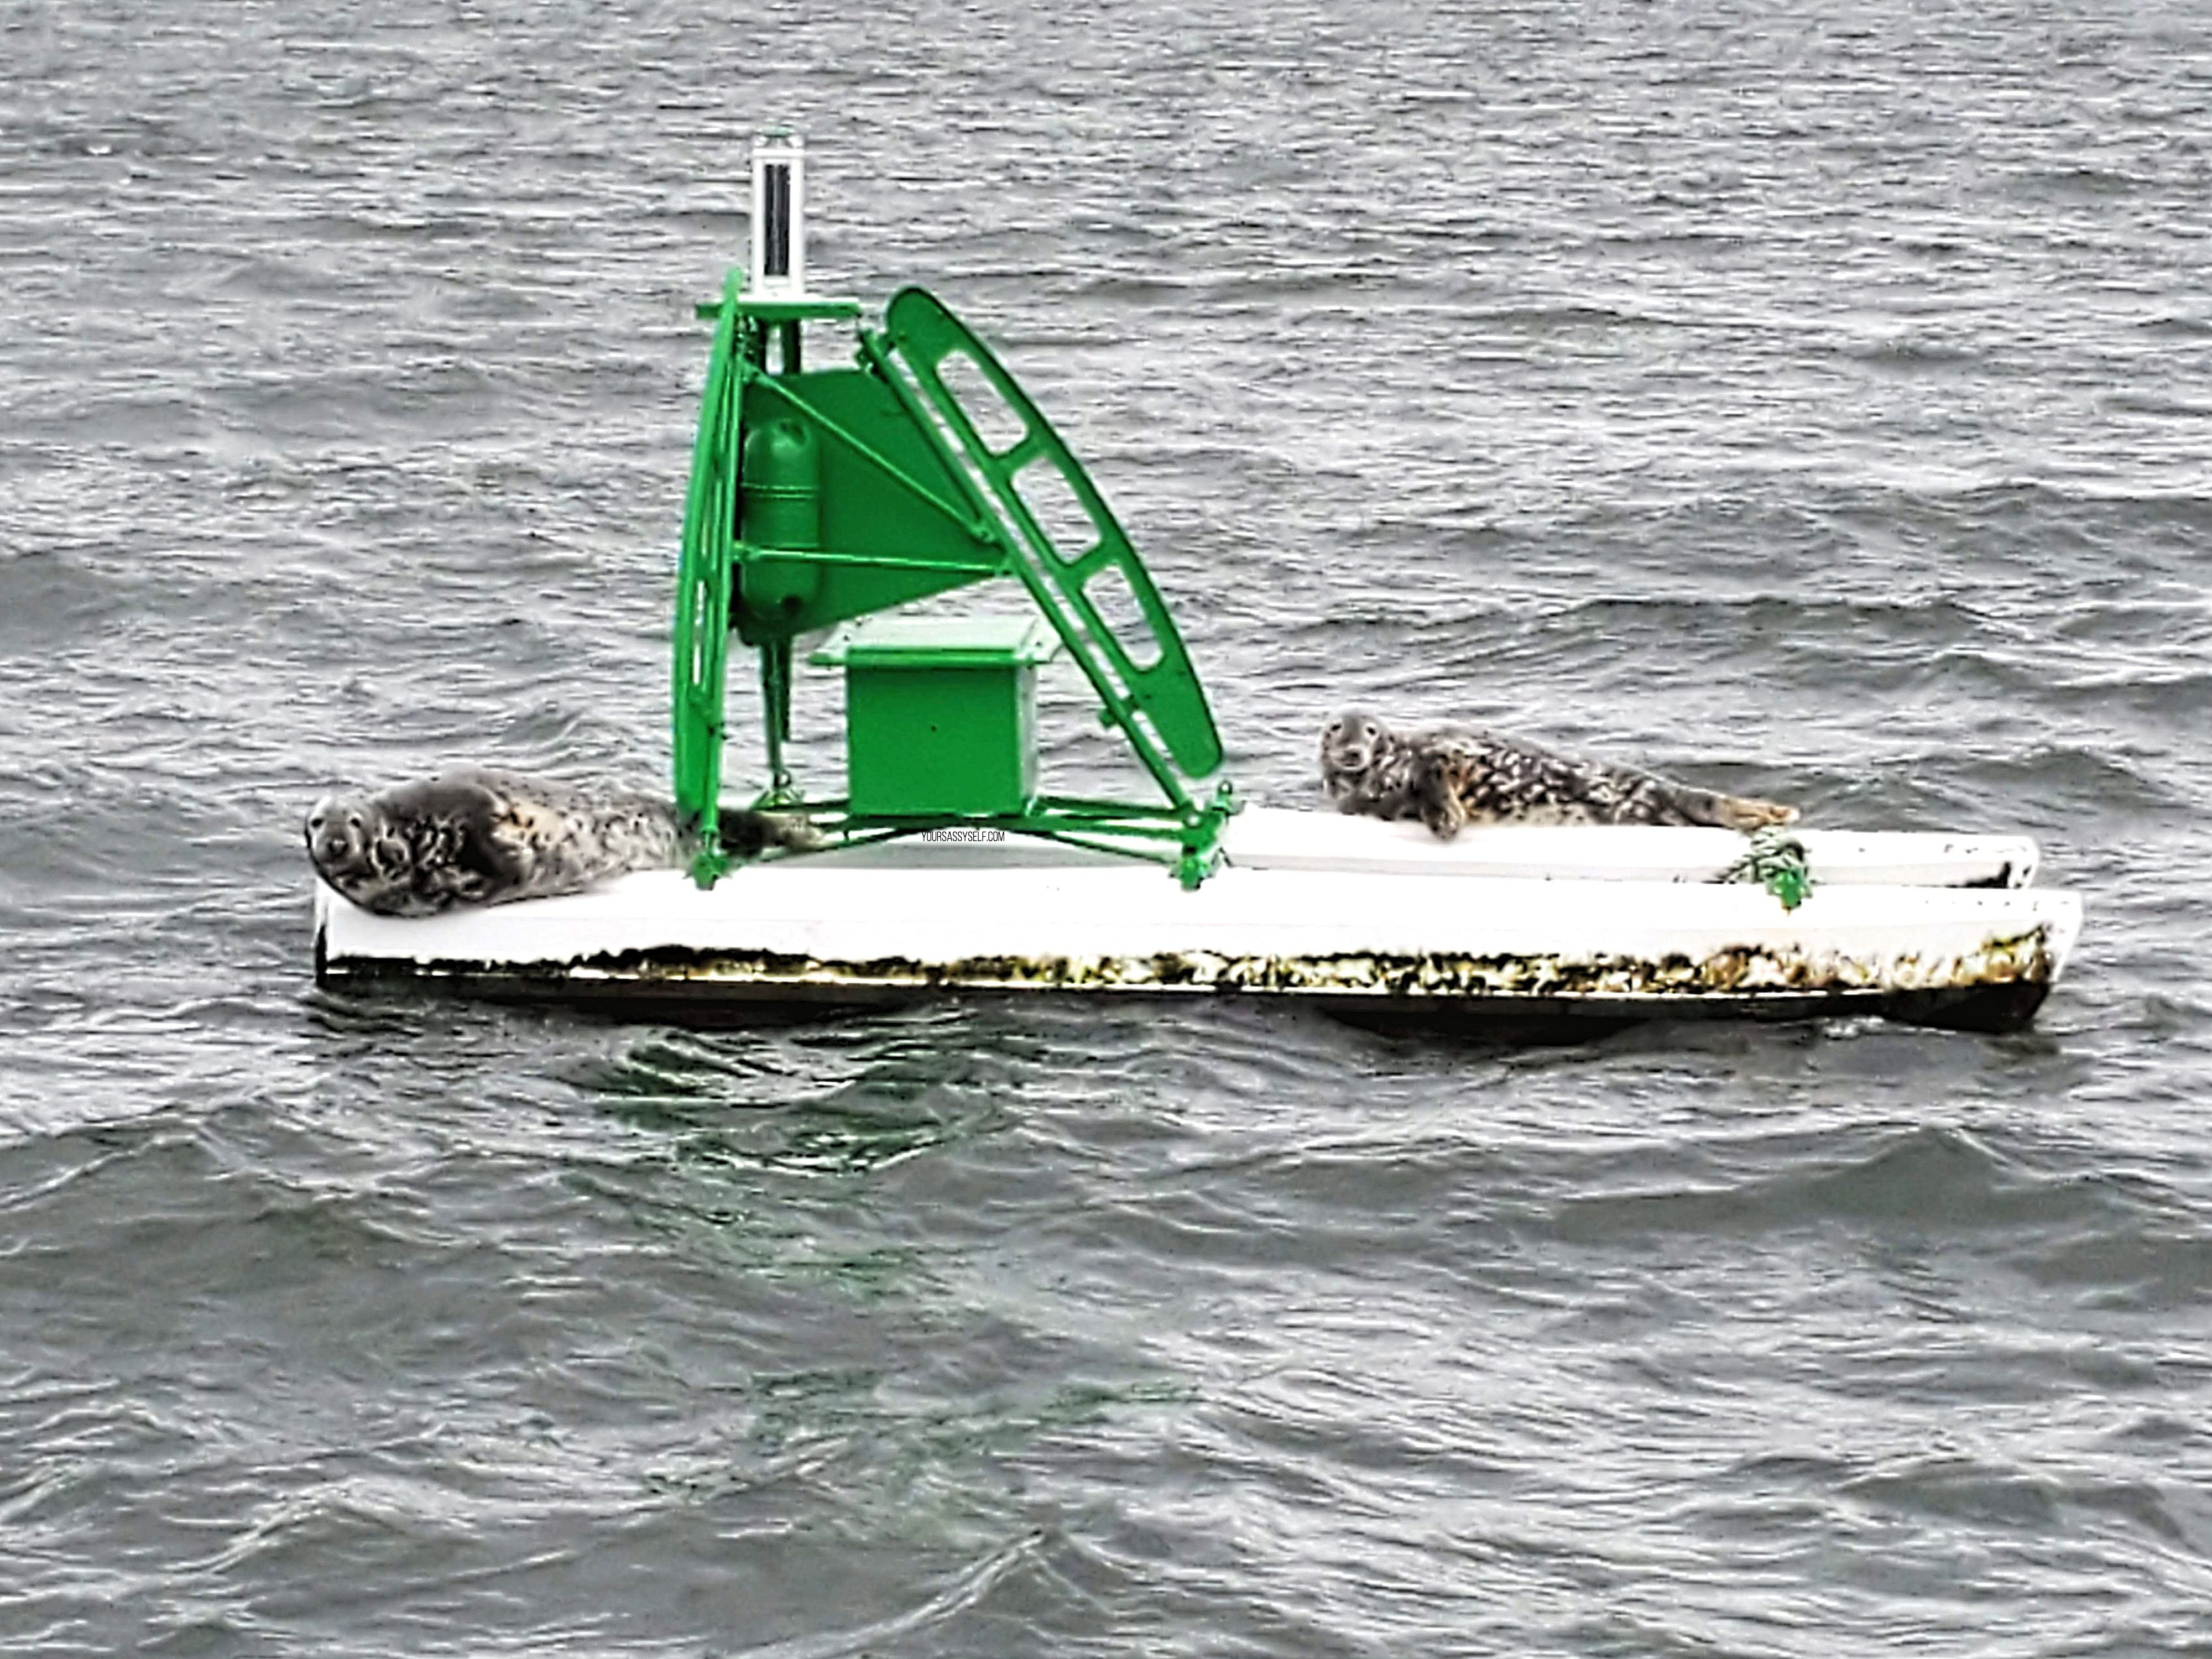 Seals Sunning on Buoy - yoursassyself.com